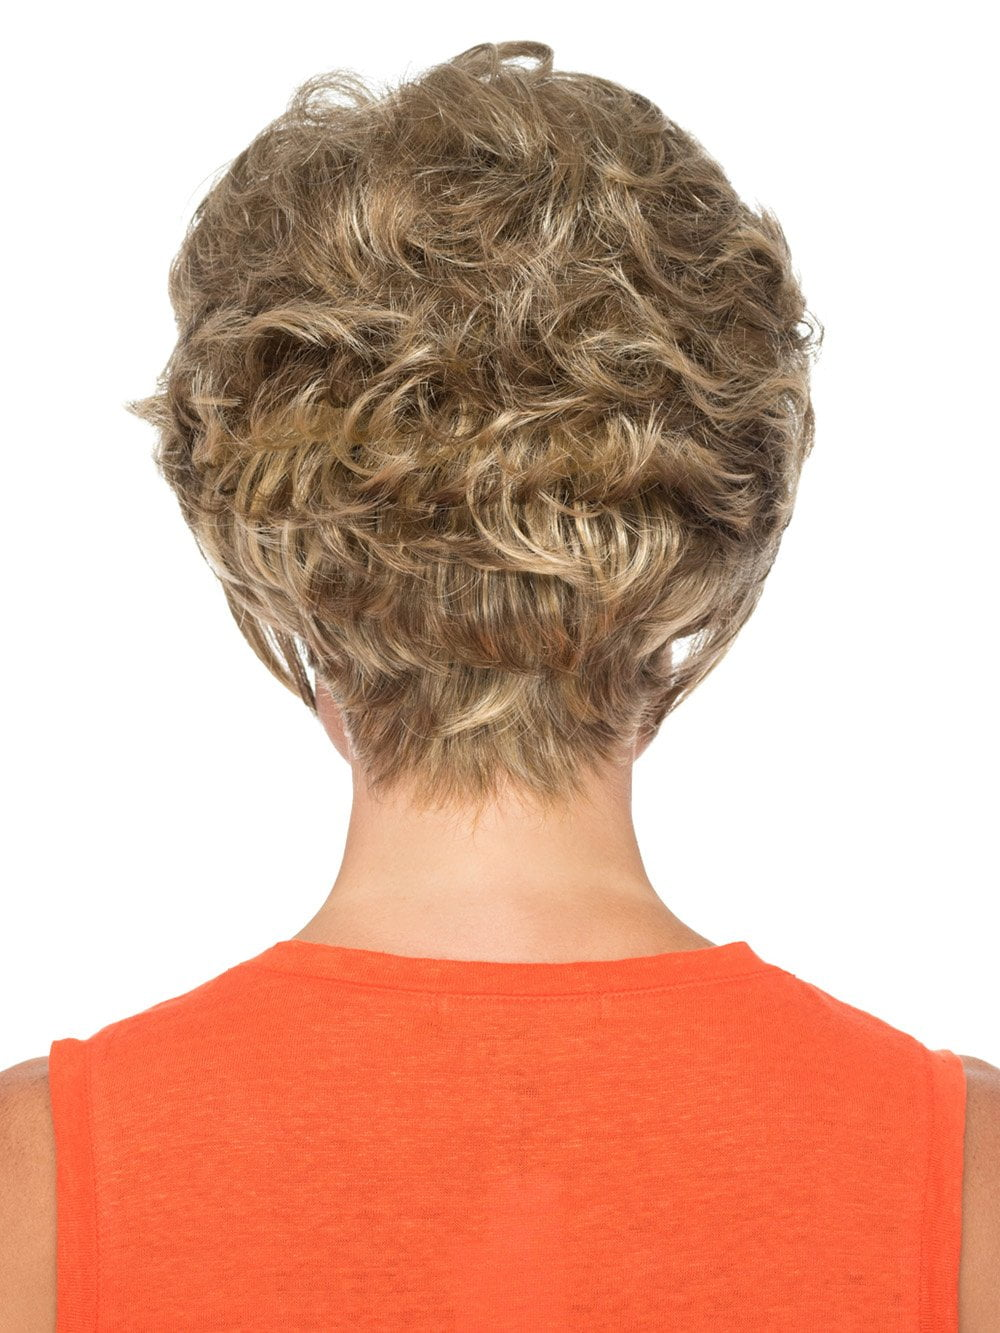 Symone by Estetica is a full style that is hip and completely charming, and a tapered nape is sure to bring some excitement to you